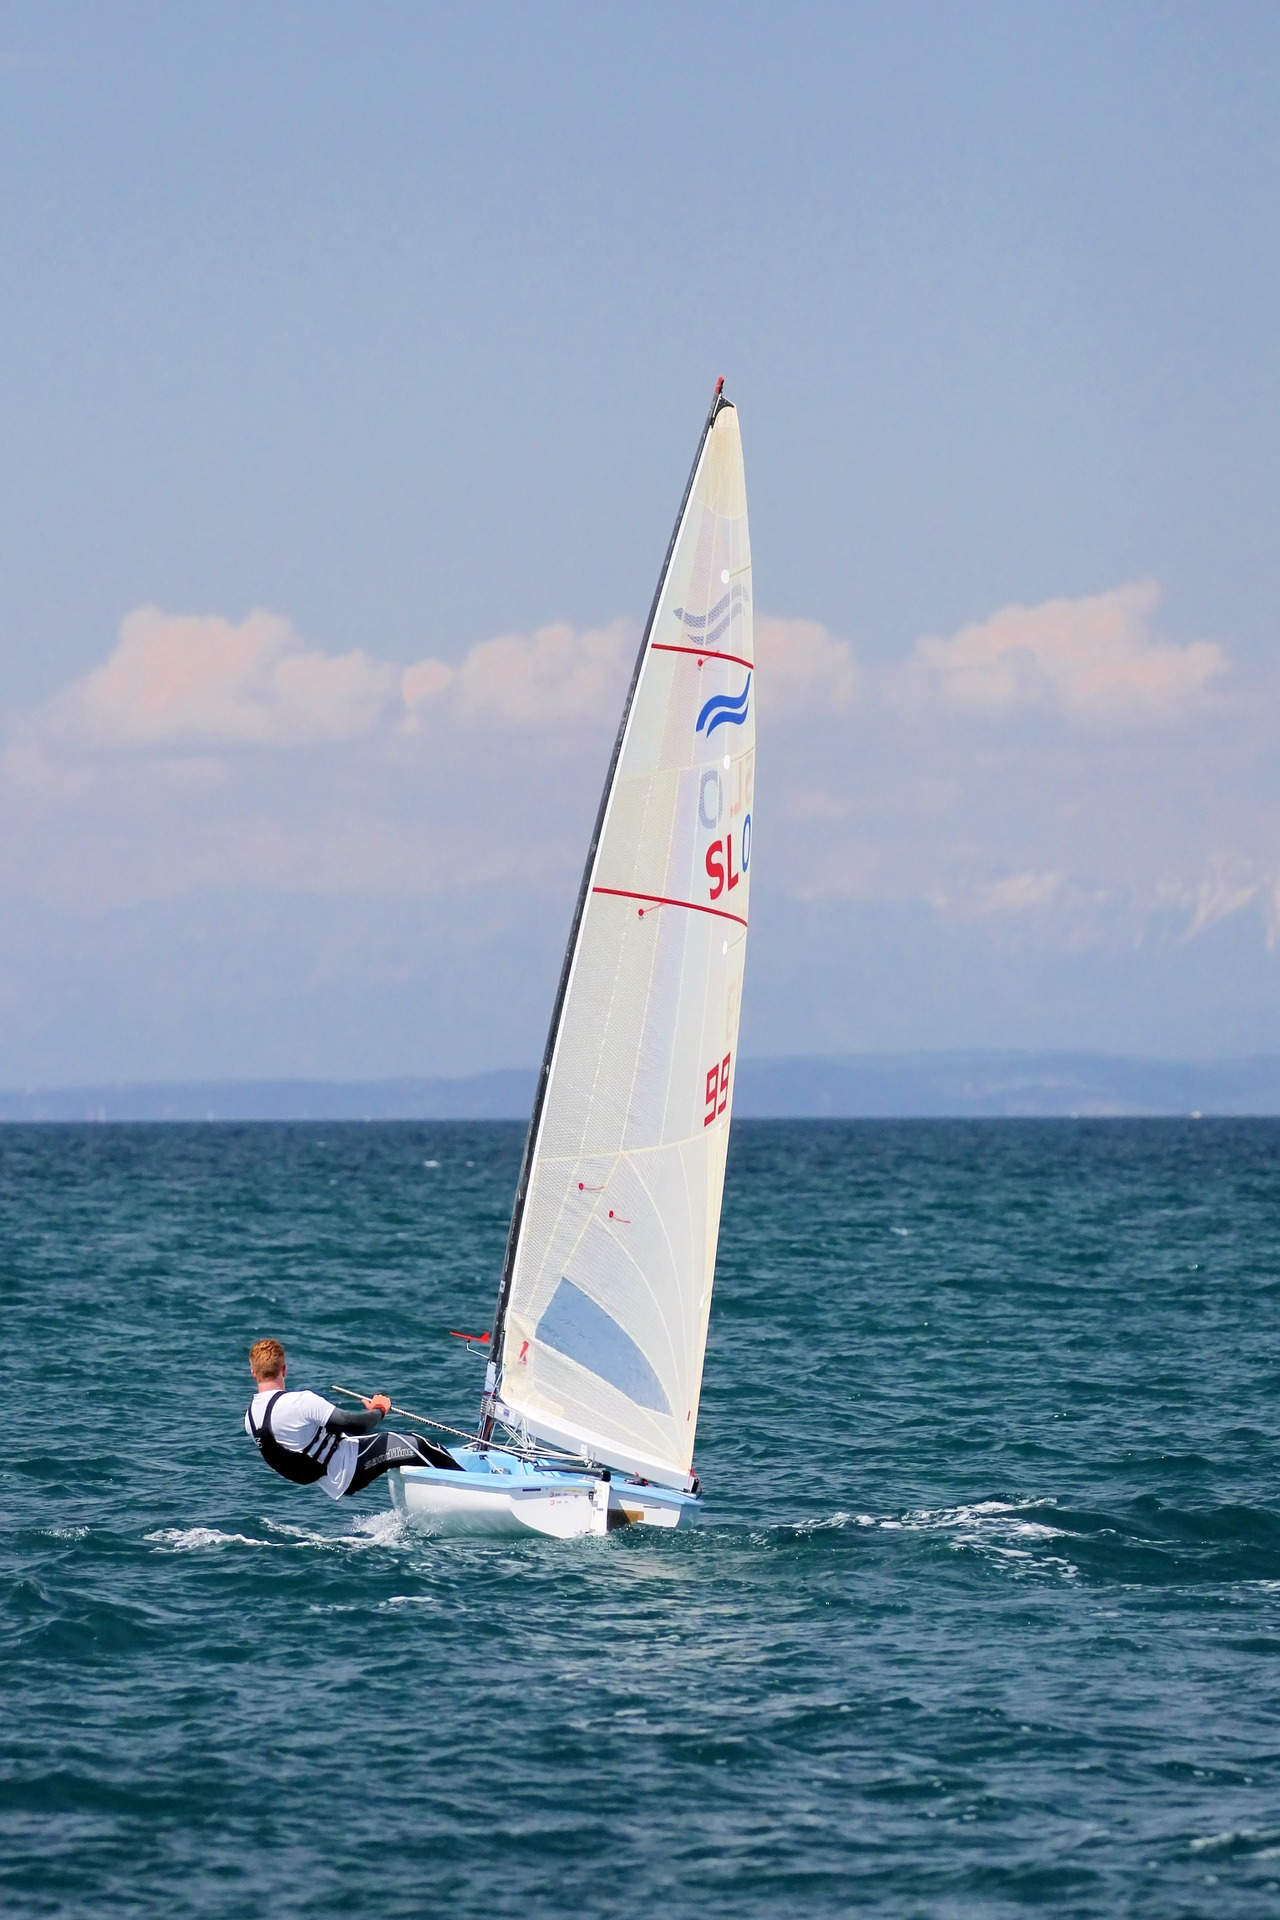 A small dinghy being sailed on the sea